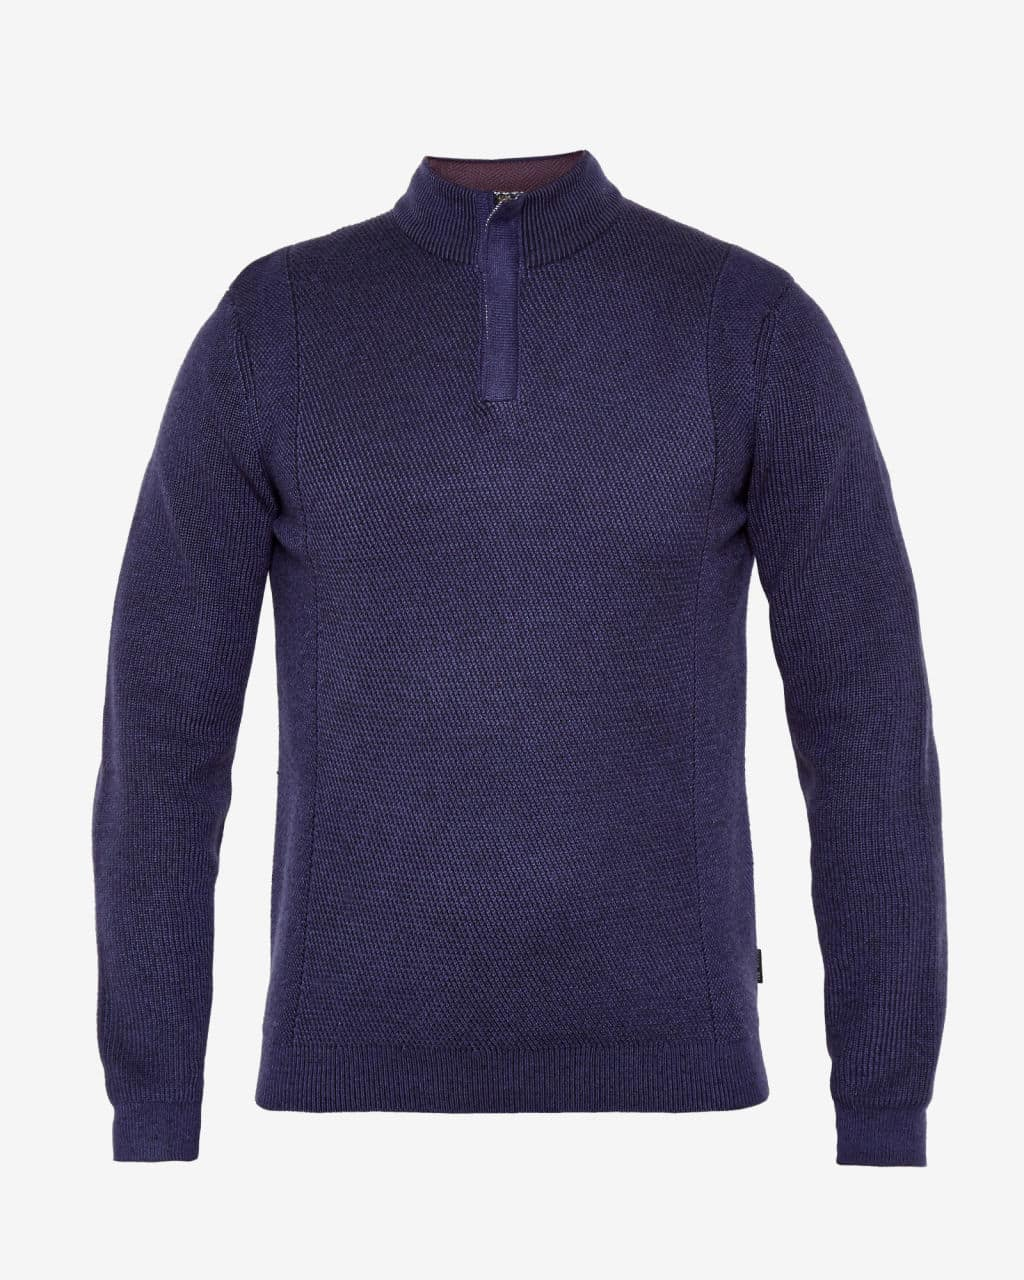 pinball-funnel-neck-jumper-dark-blue_ta6m_pinball_12-dark-blue_5_jpg